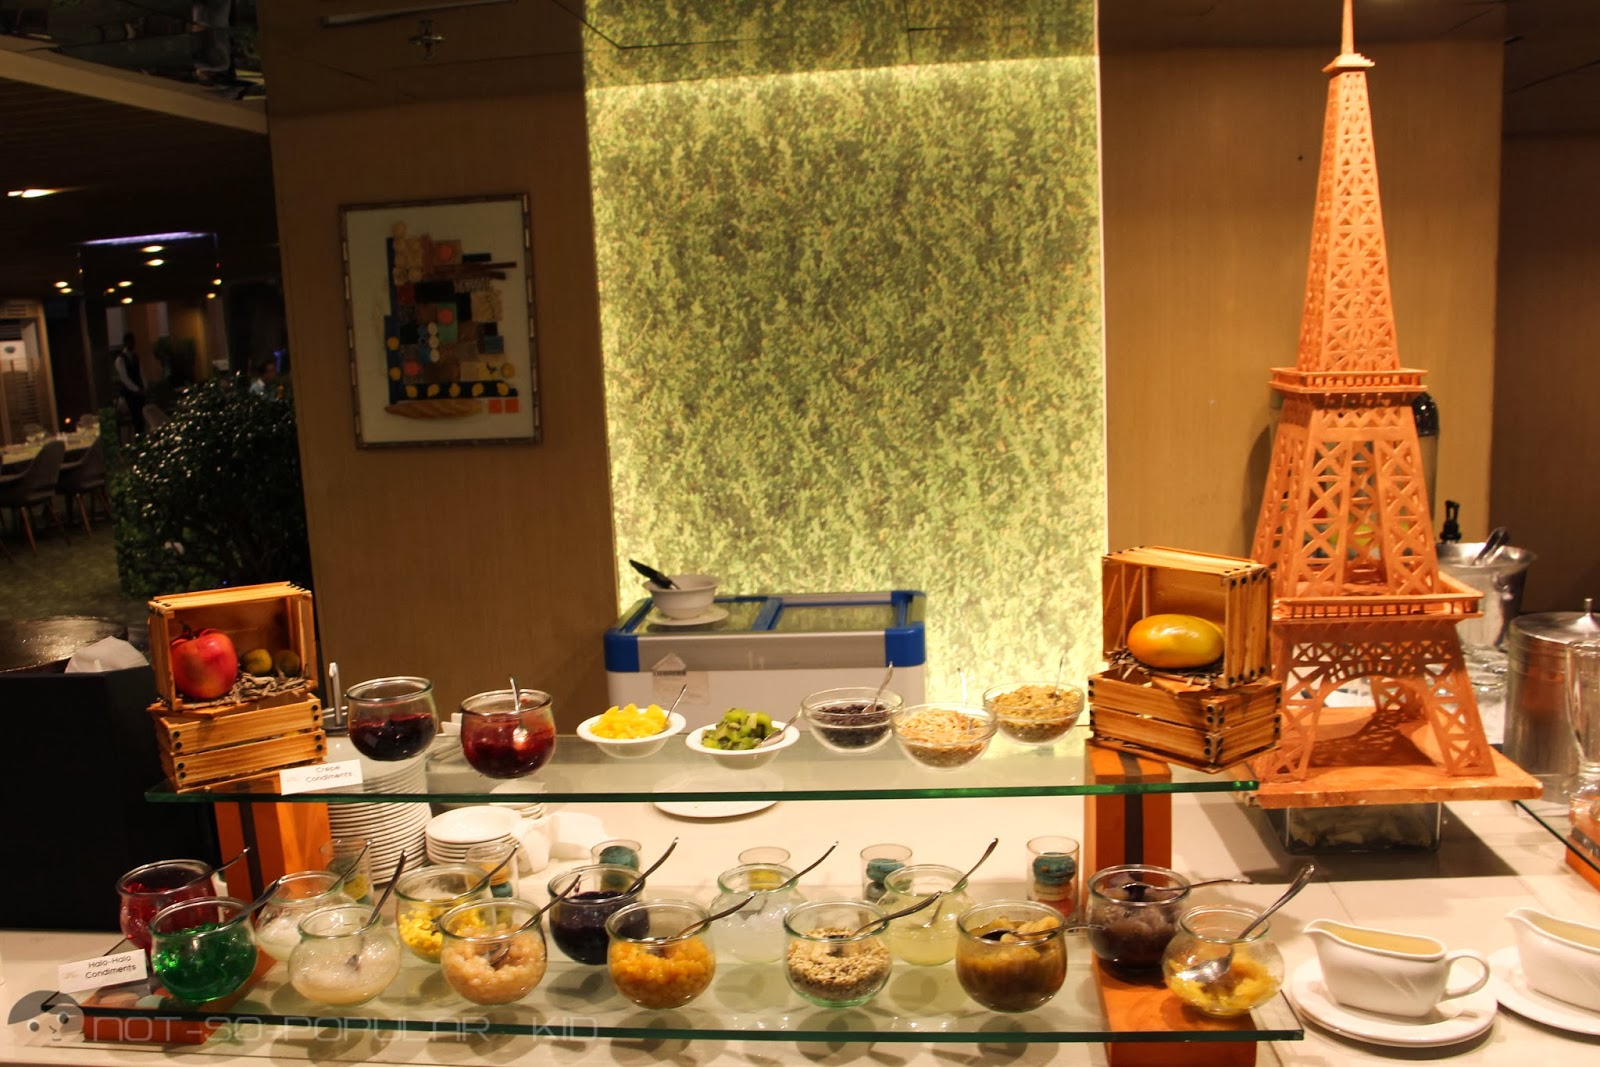 Crepe, Ice Cream and Halo-Halo Station of Midas Cafe - craft your own!